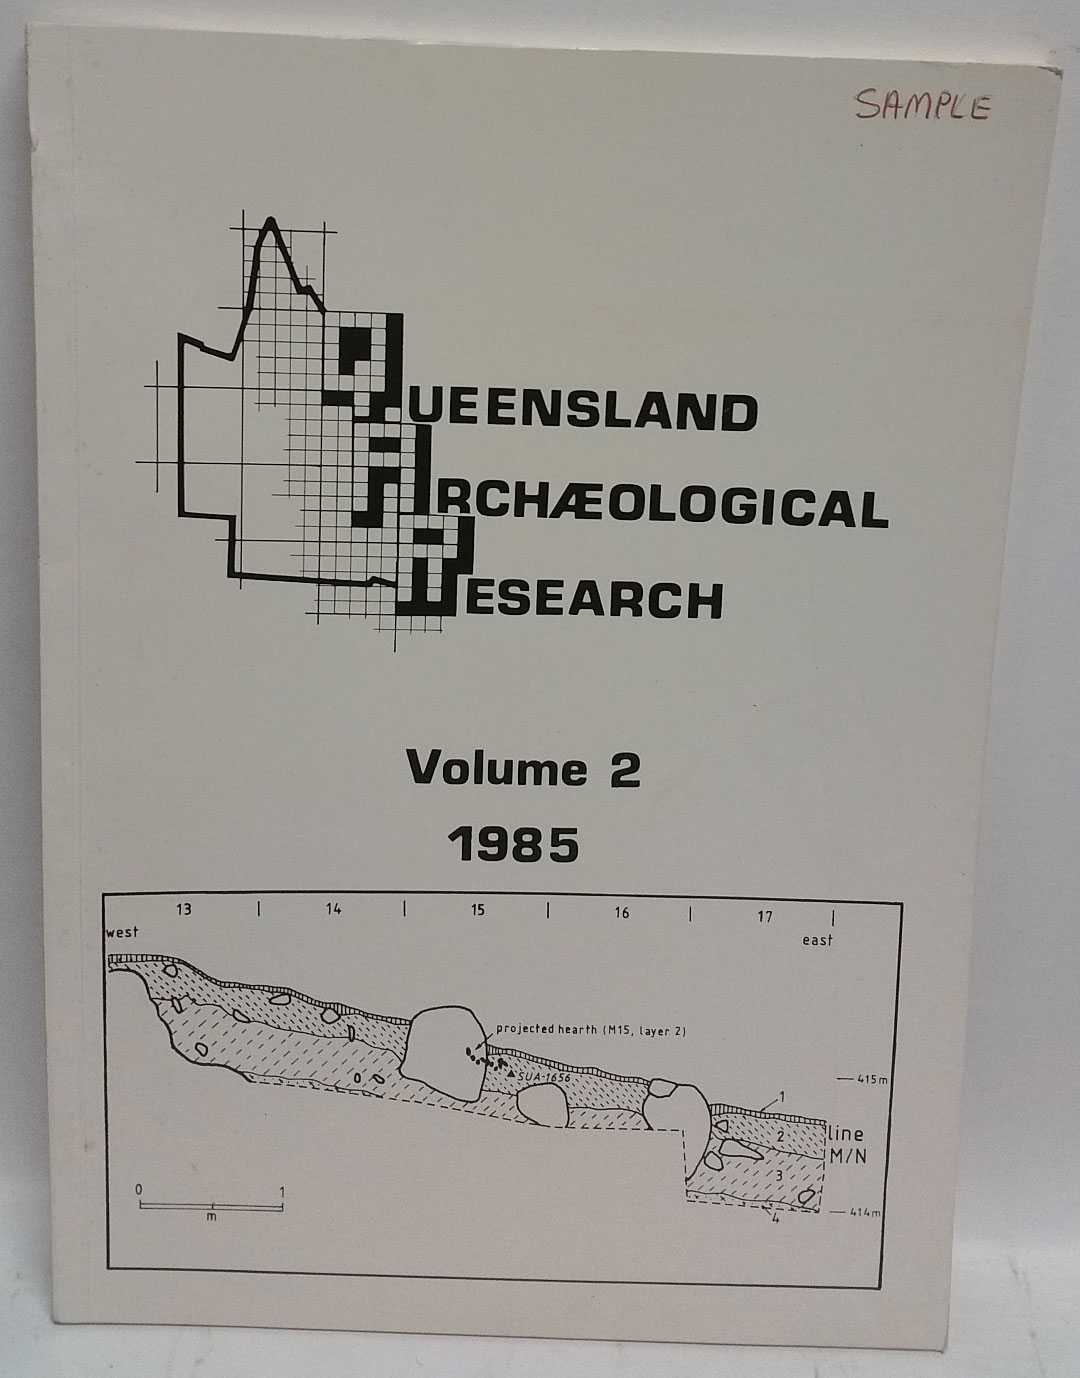 Queensland Archaeological Research Volume 2, 1985, H. J. Hall